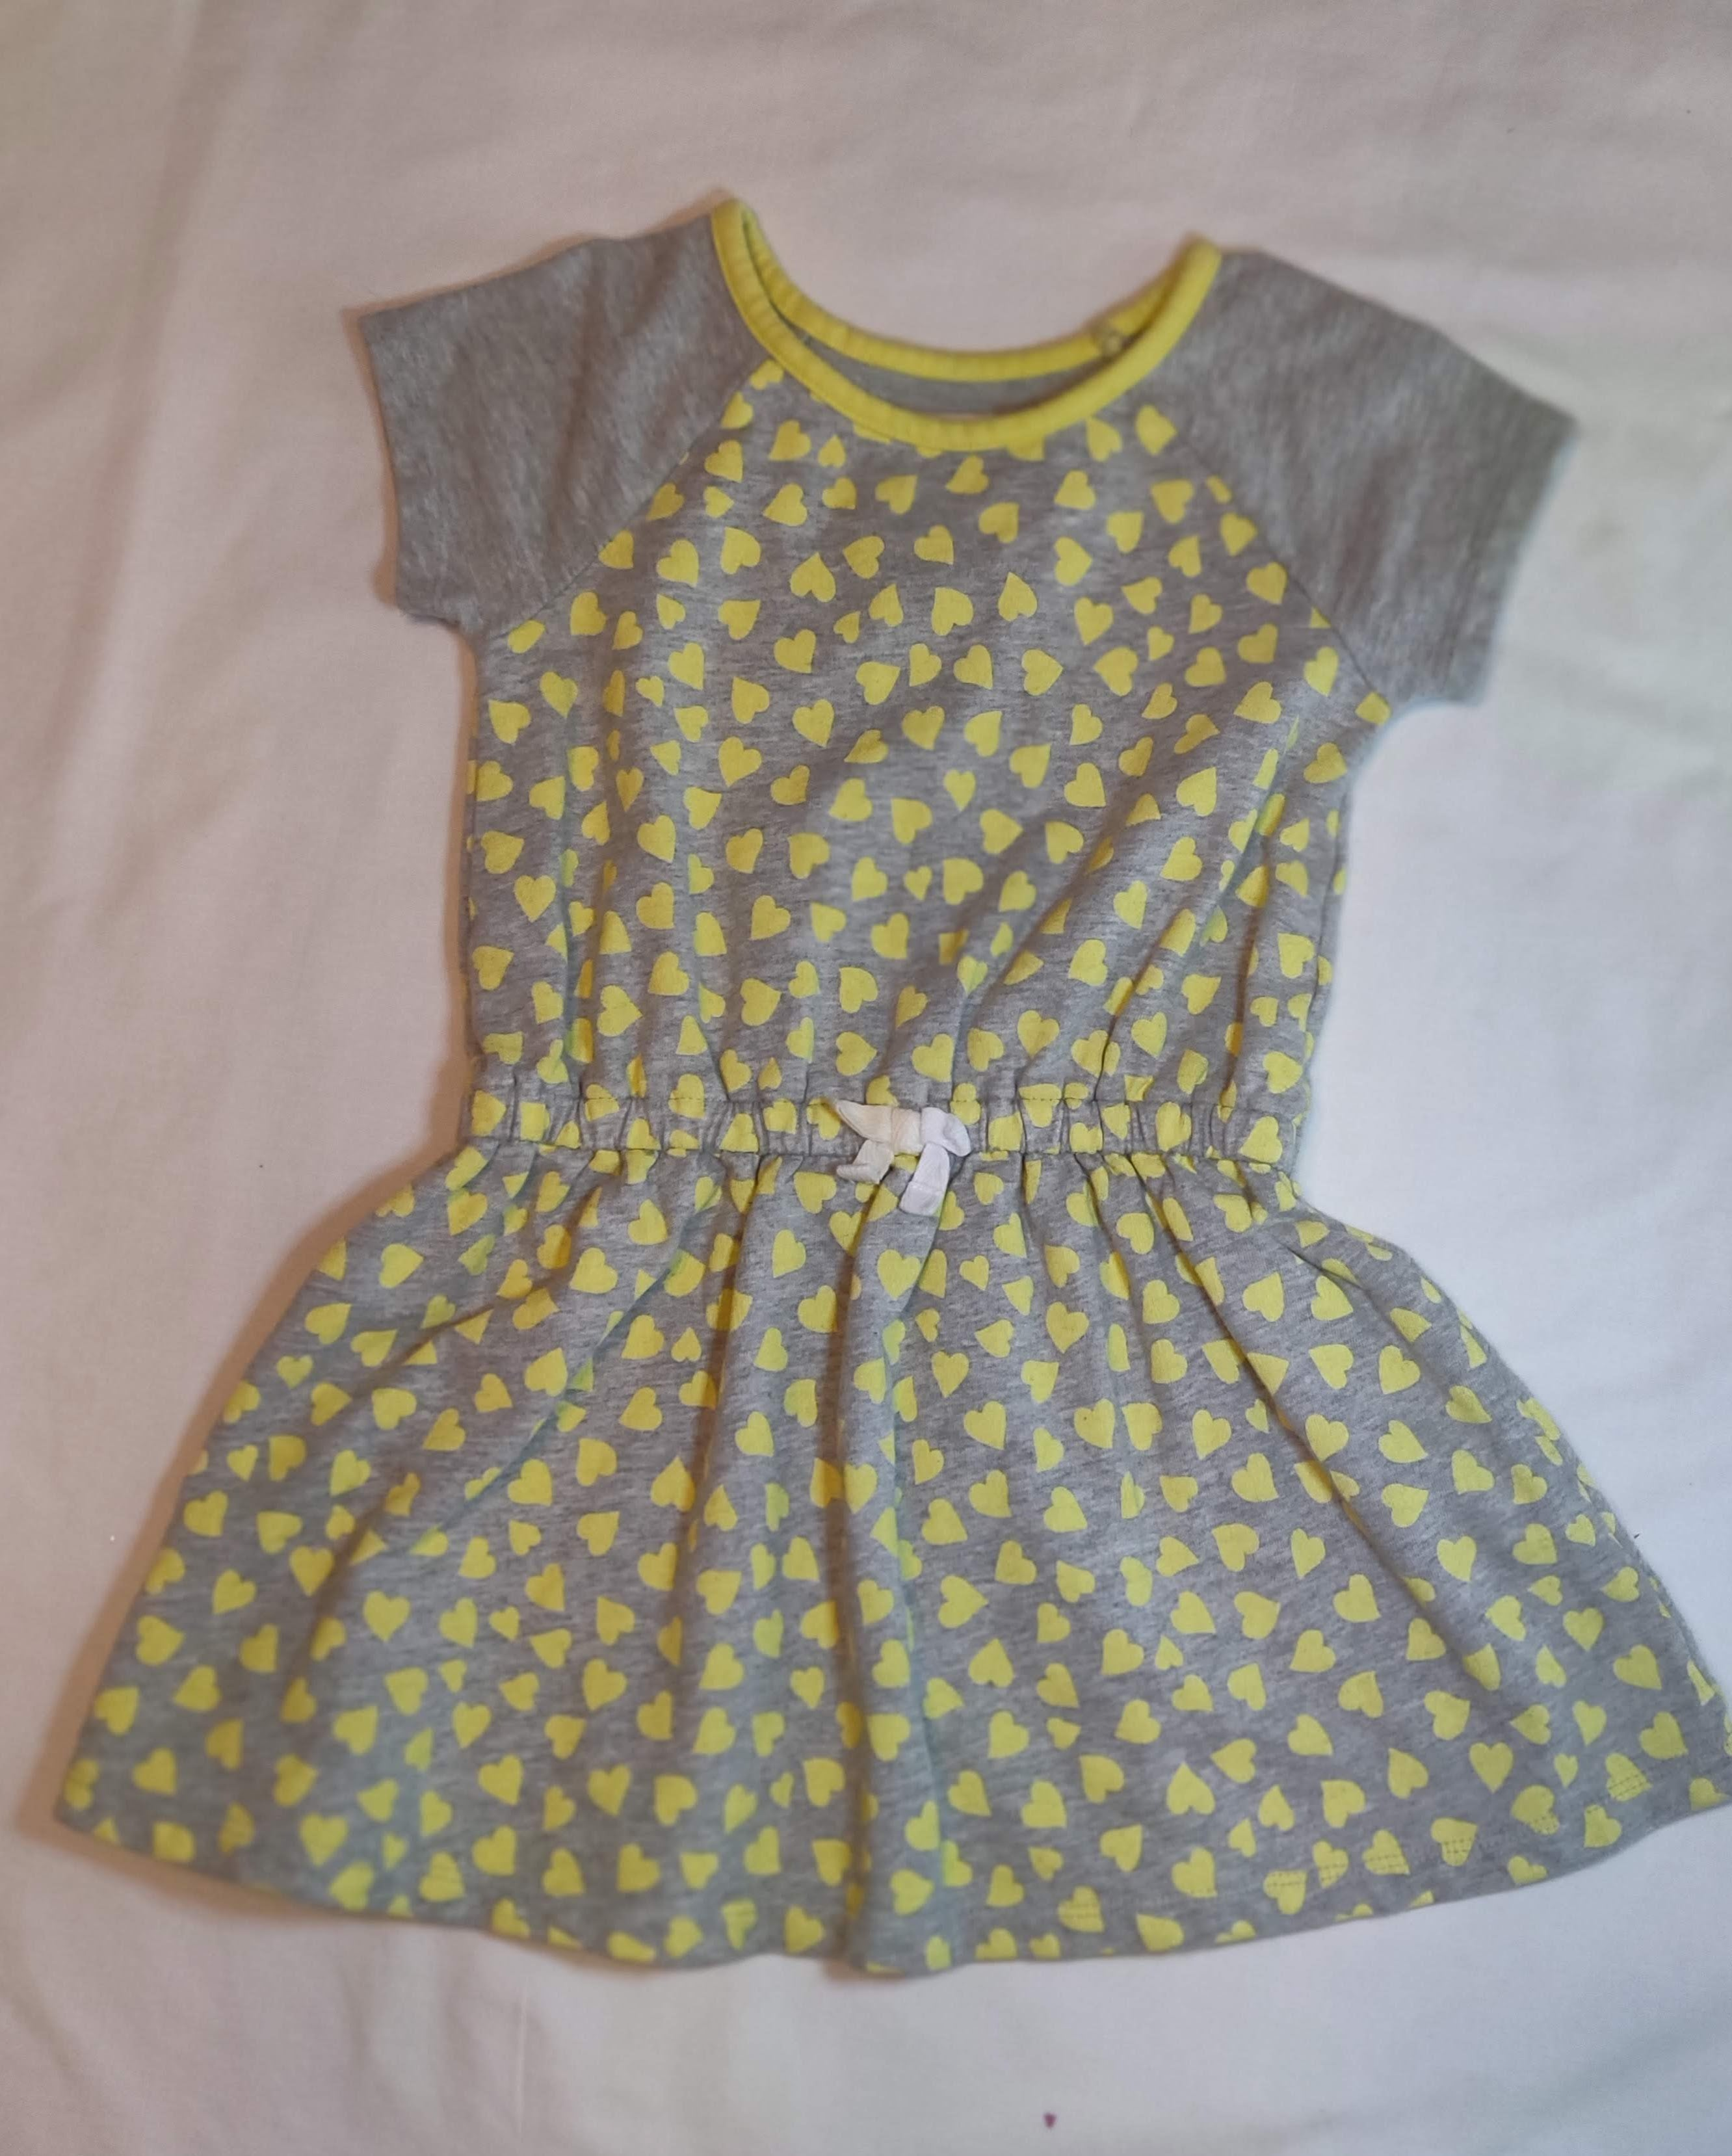 CHILDRENS PLACE size 4 grey dress with yellow hearts